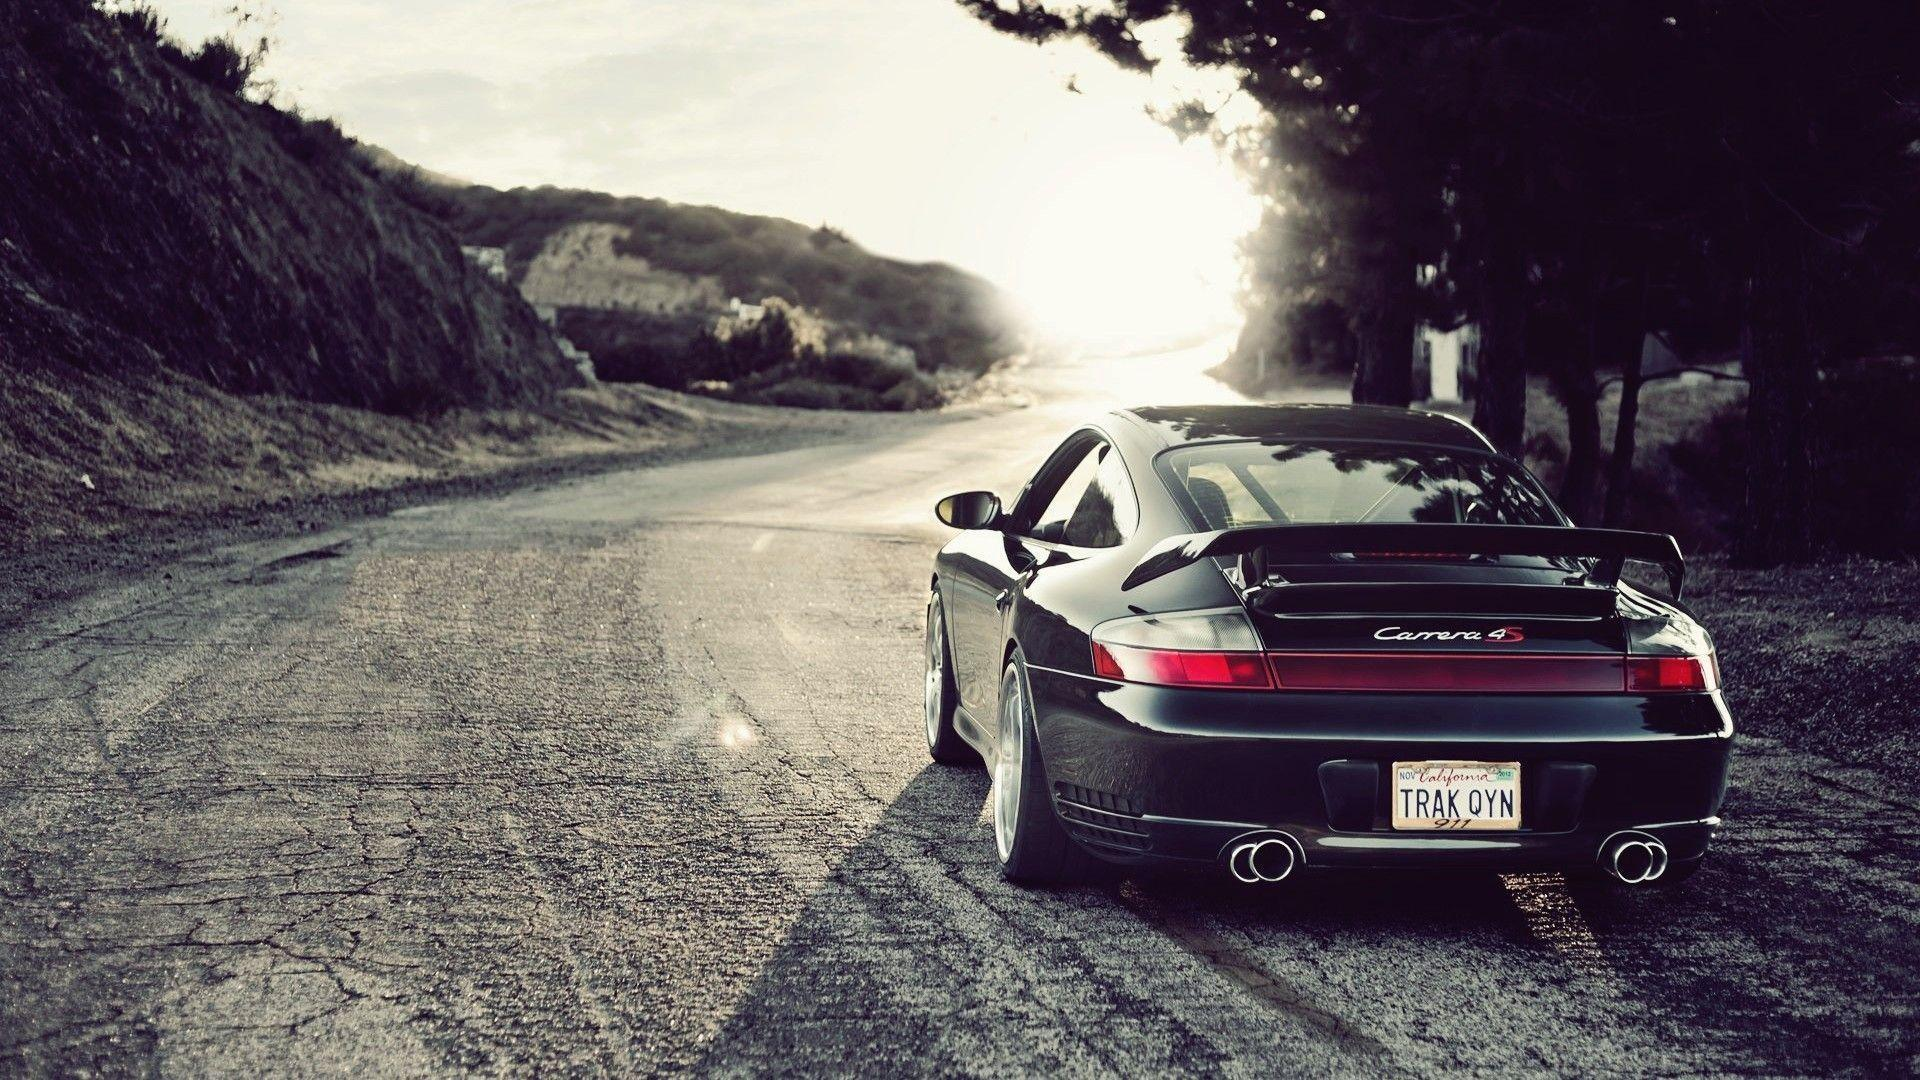 Wallpapers For > Porsche 911 Wallpaper 1920x1080